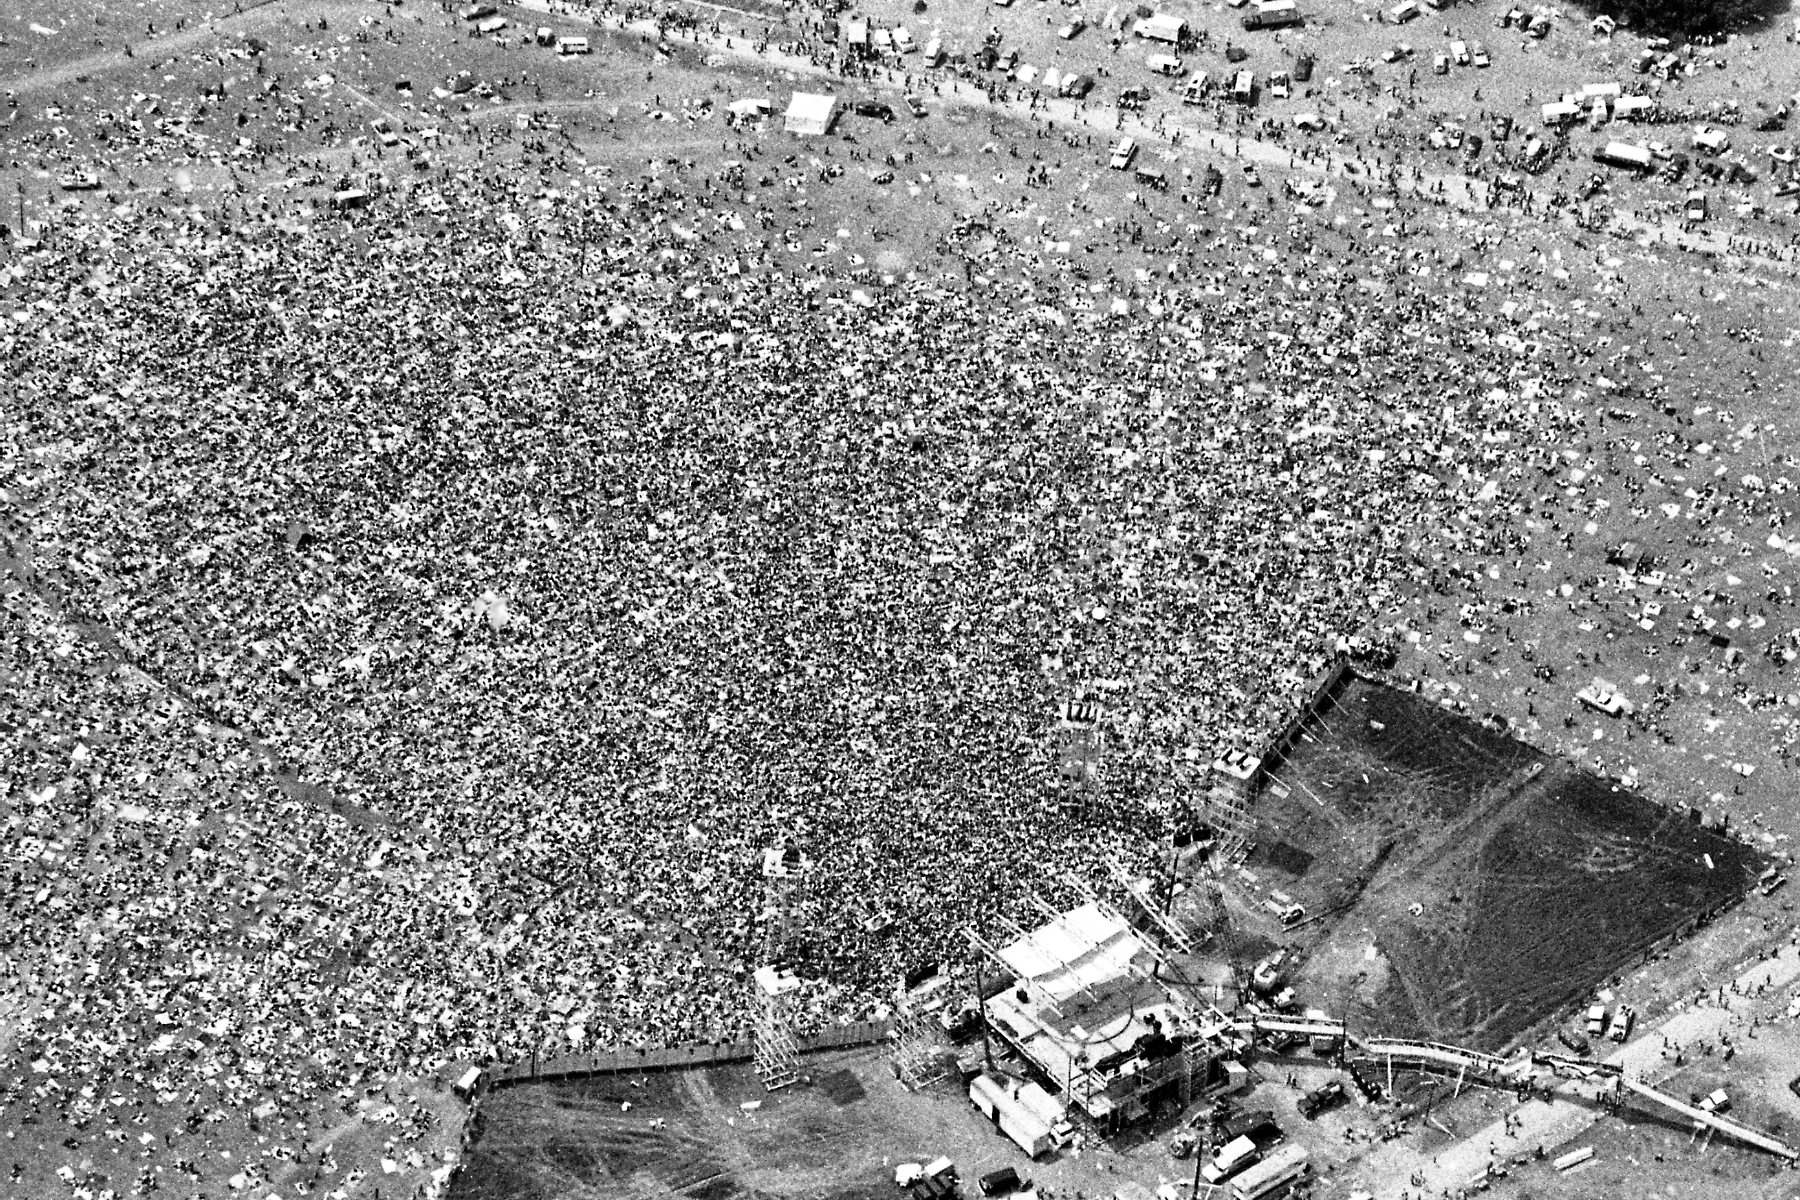 Chaos avoided this time as Woodstock concert site preps for 50th